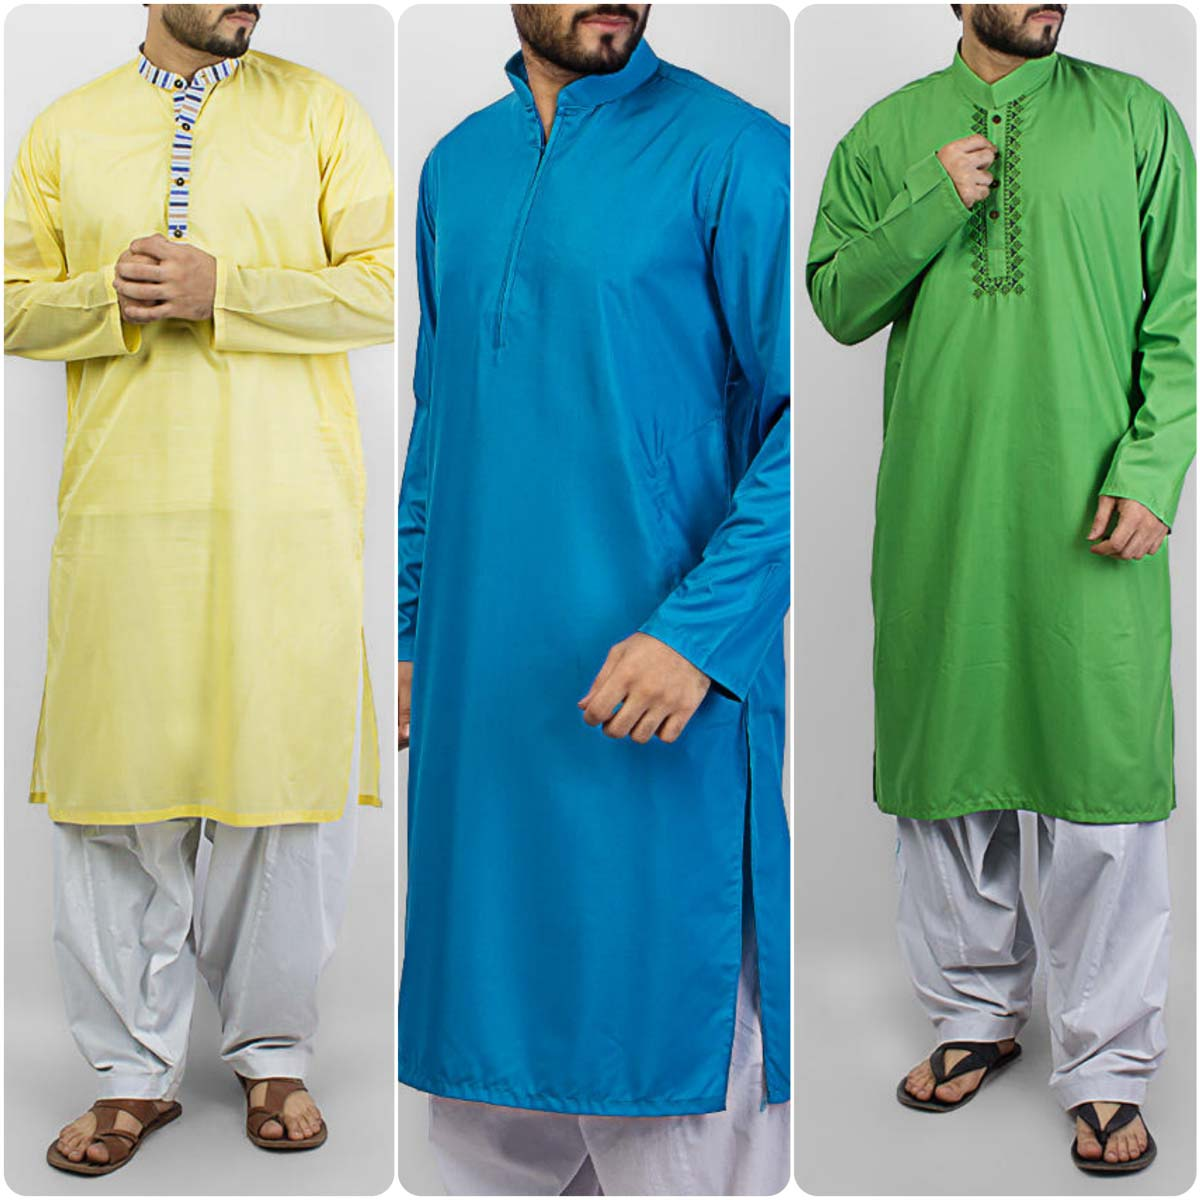 Designs of male and female fashion of shalwar kameez kurta designs - The Fashion